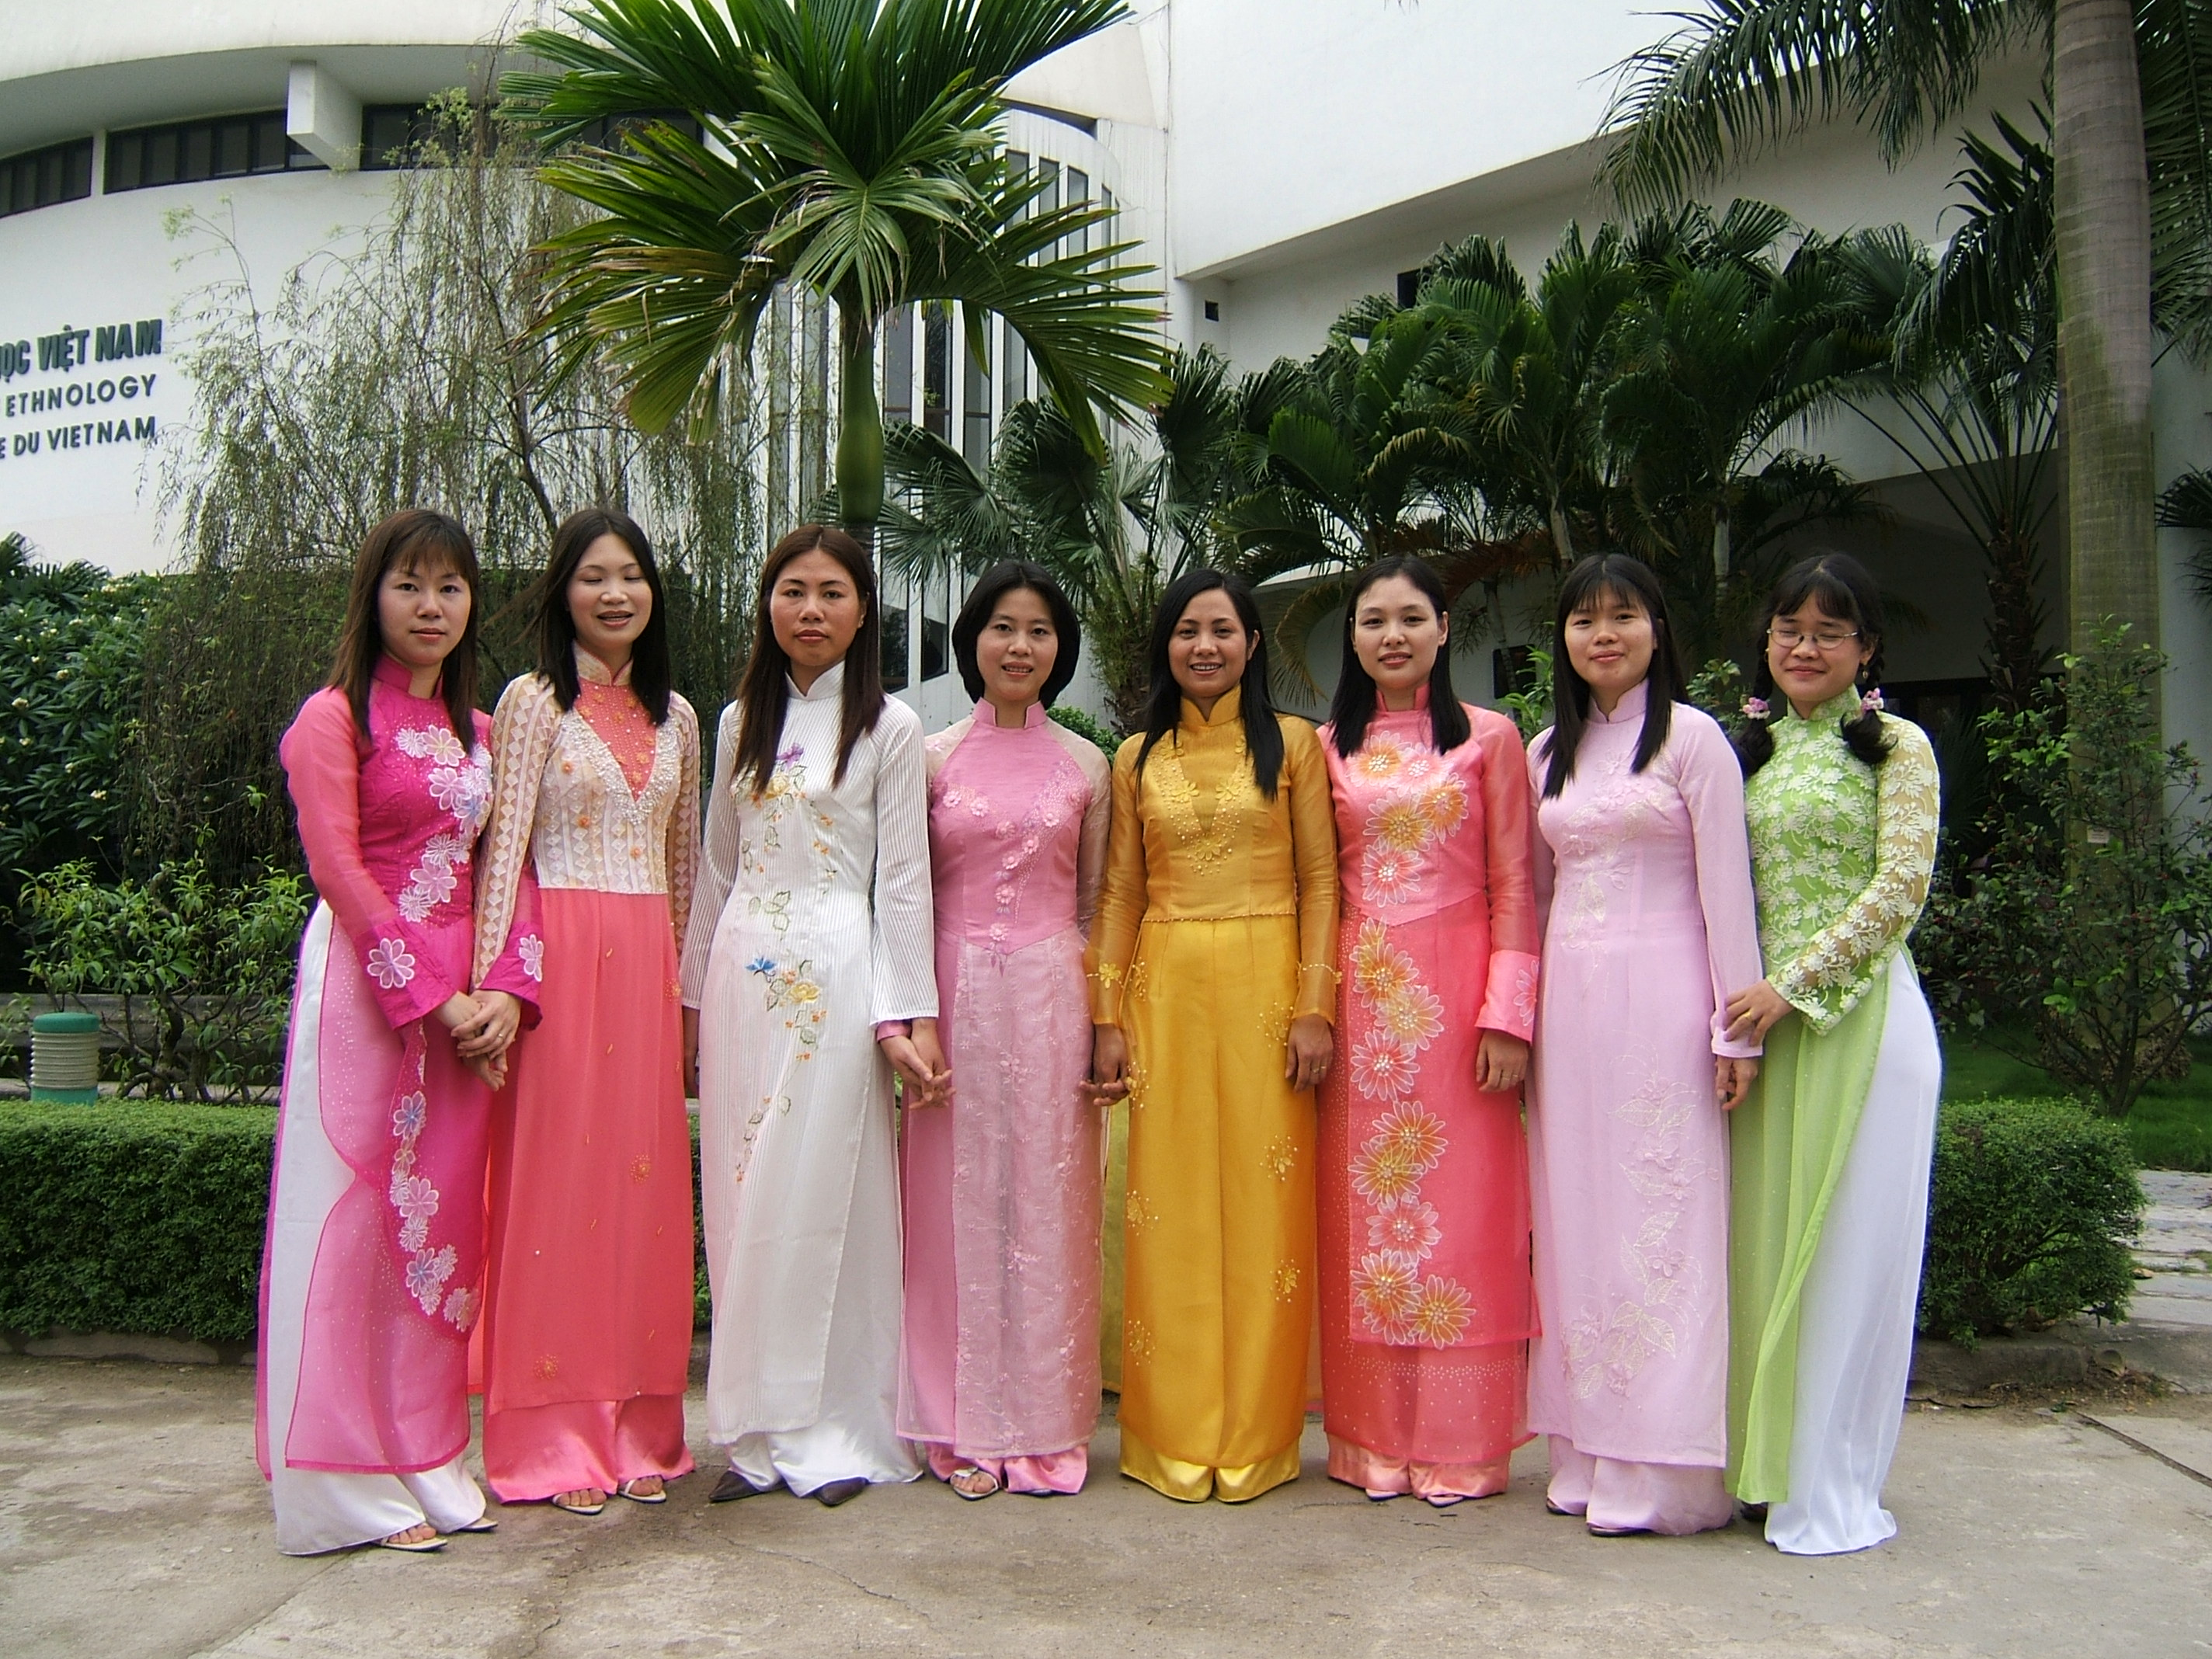 Description Mot so kieu ao dai le hoi.JPG